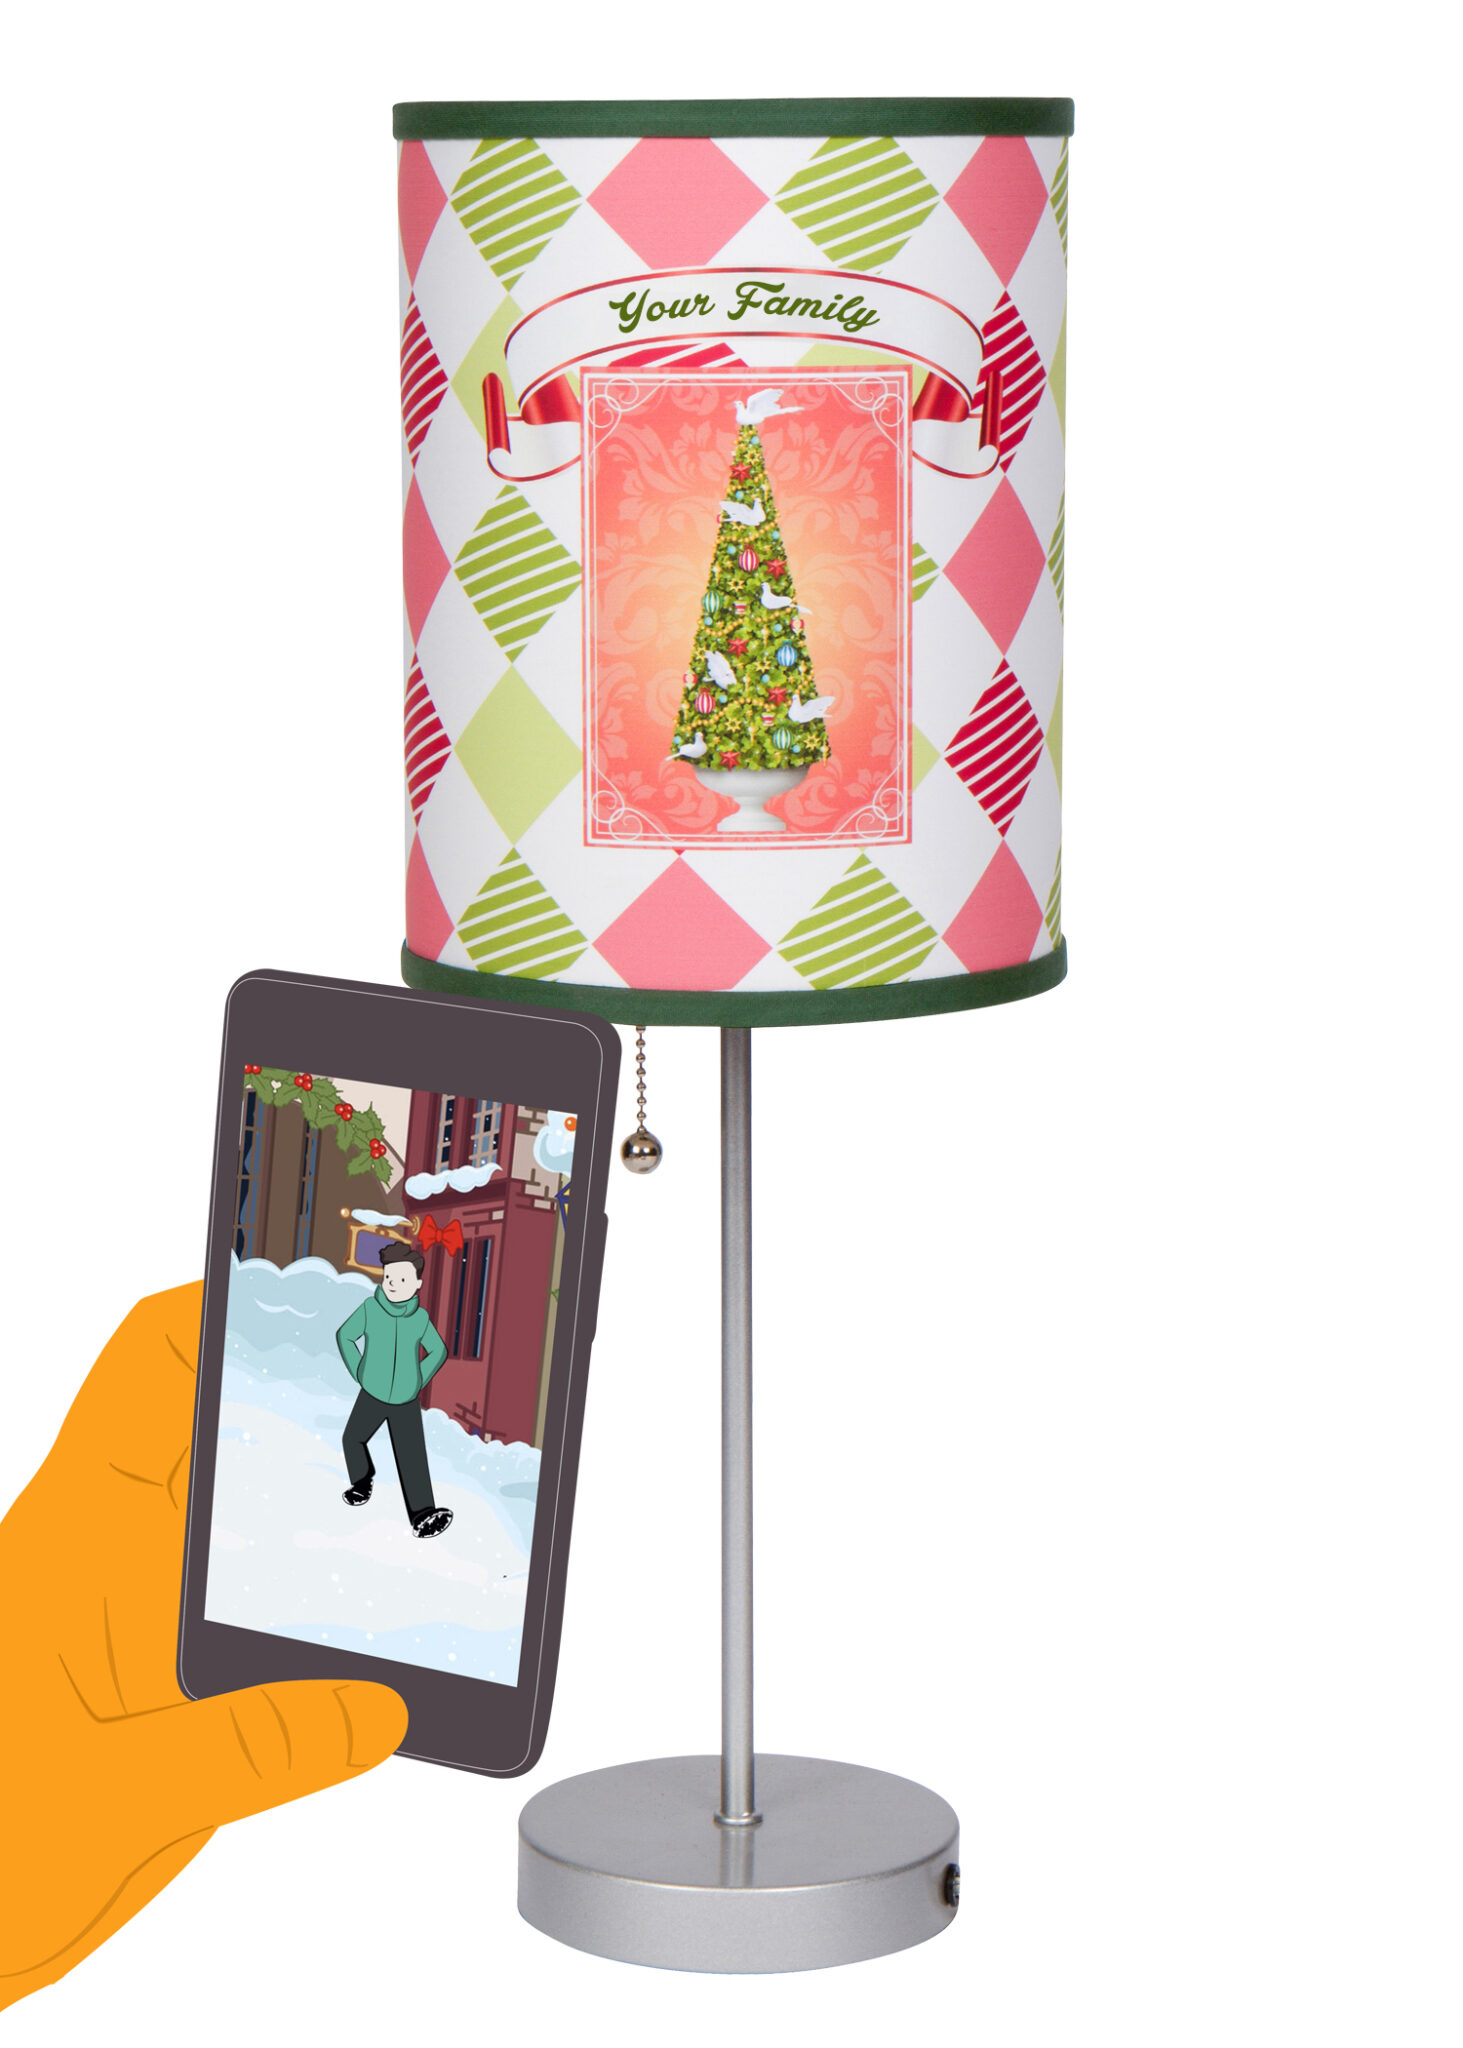 Scanning lamp example